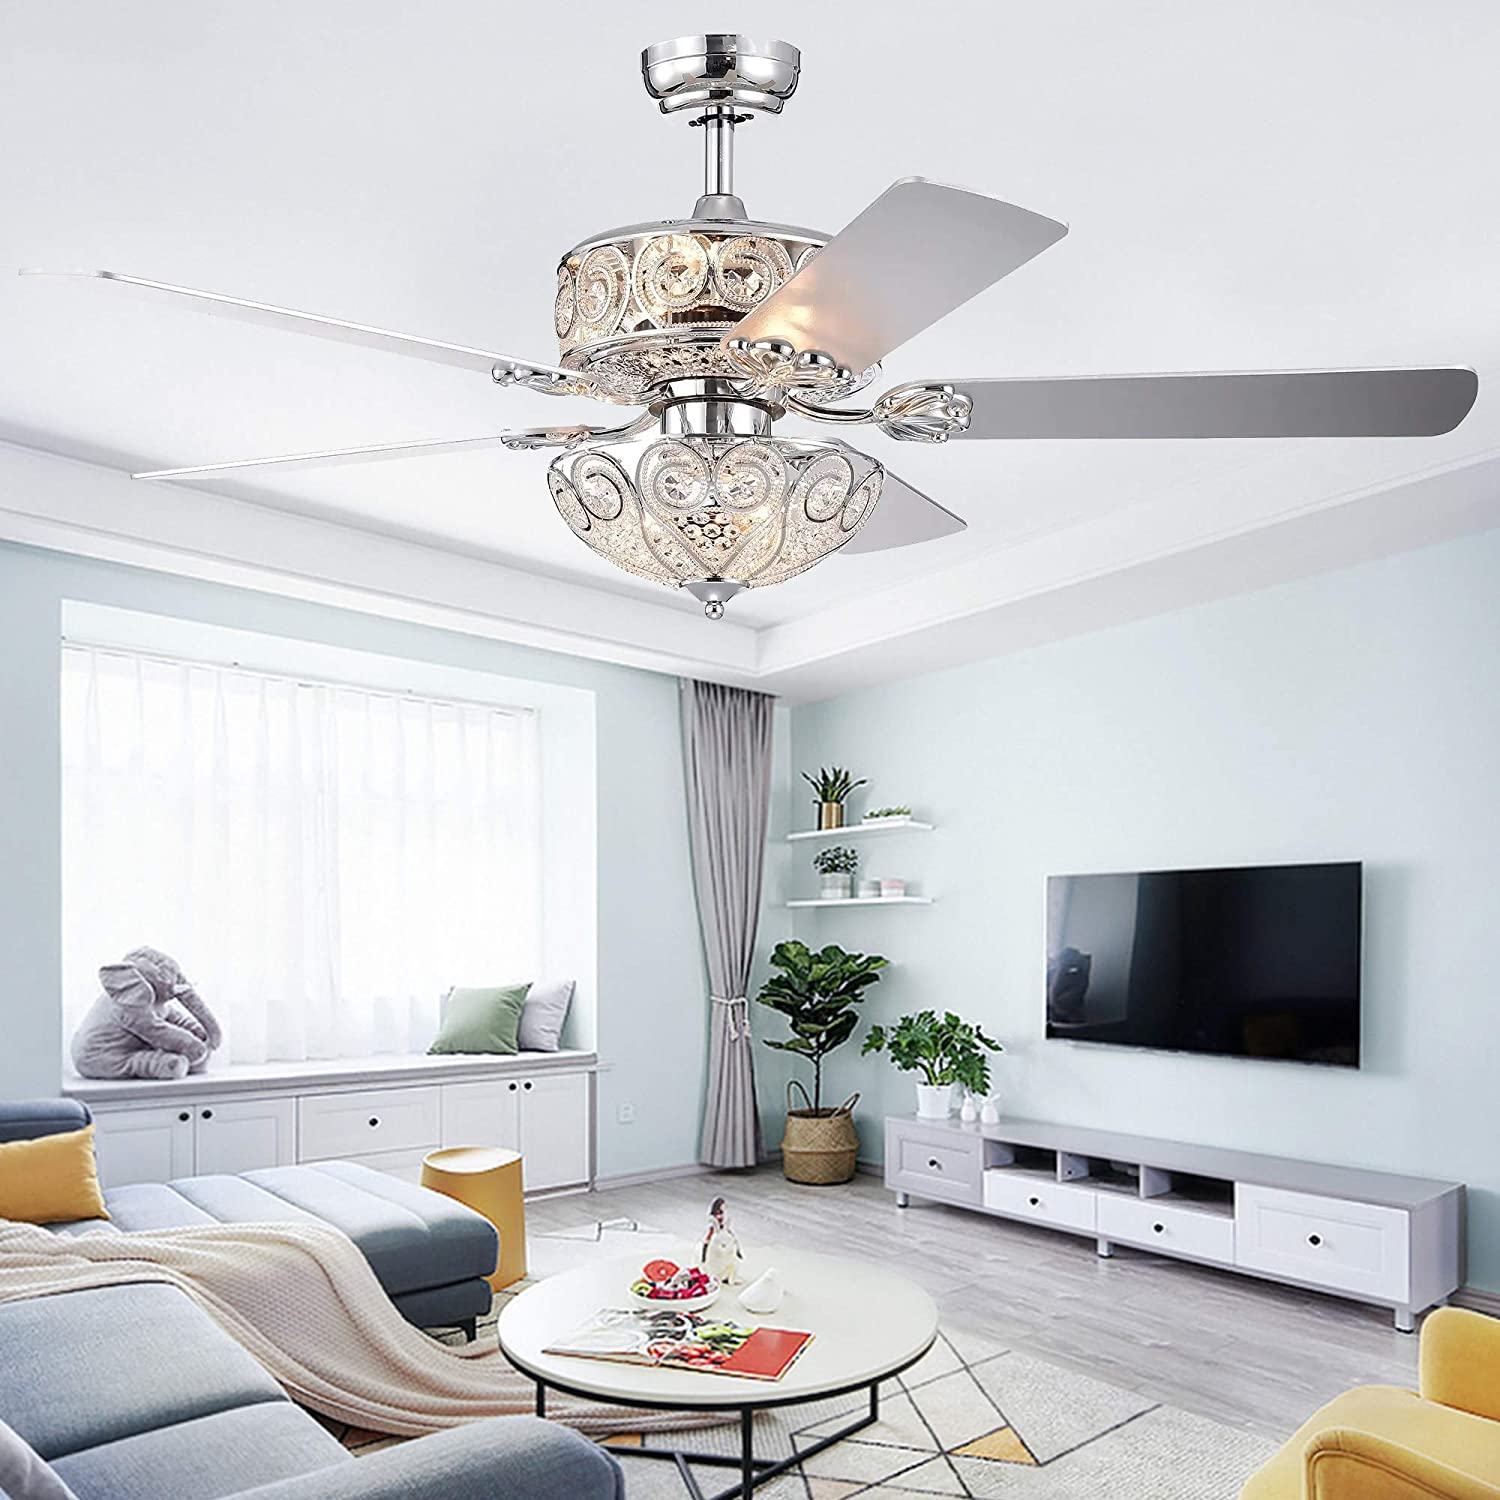 RainierLight Crystal Ceiling Fan Lamp LED Light for Bedroom/Living Room Hotel/Restaurant with 5 Wood Reversible Blades Remote Control 52 Inch